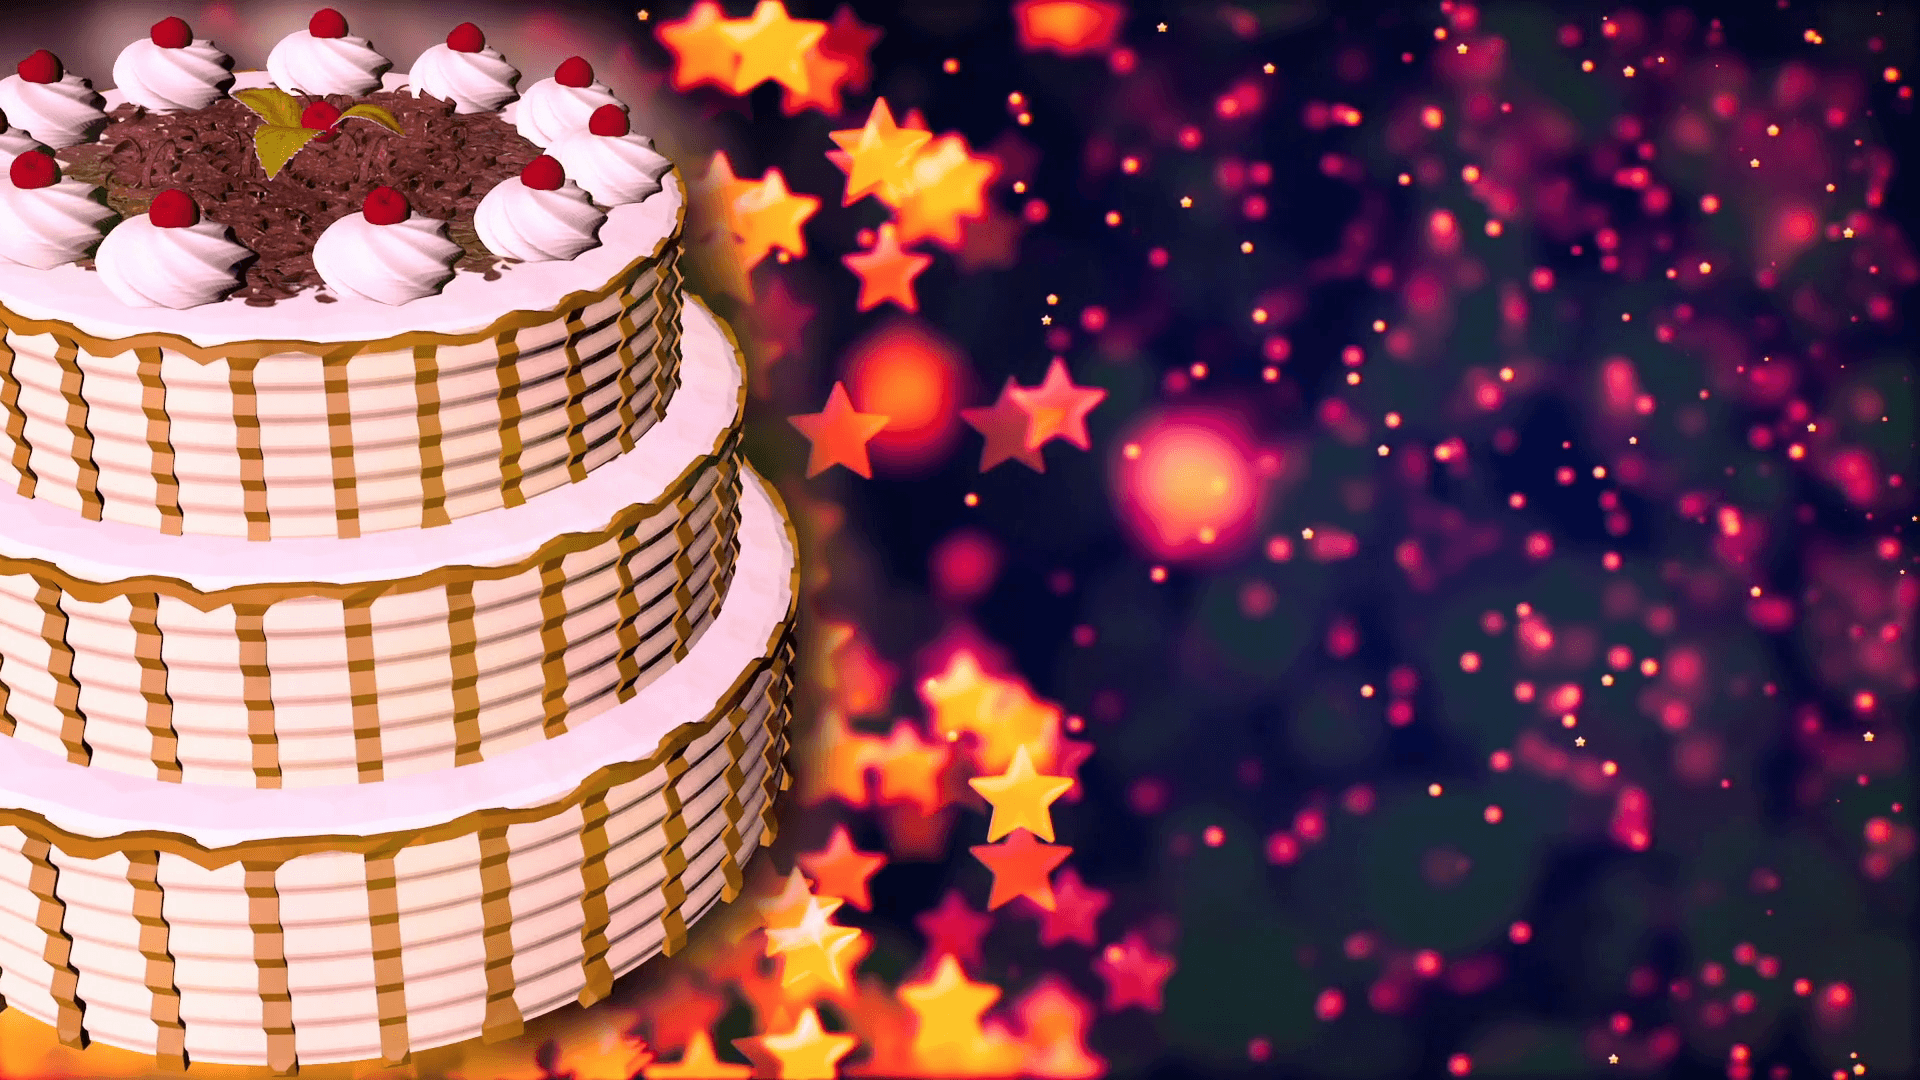 Happy Birthday cake. Loopable Abstract Background. Motion Backgrounds